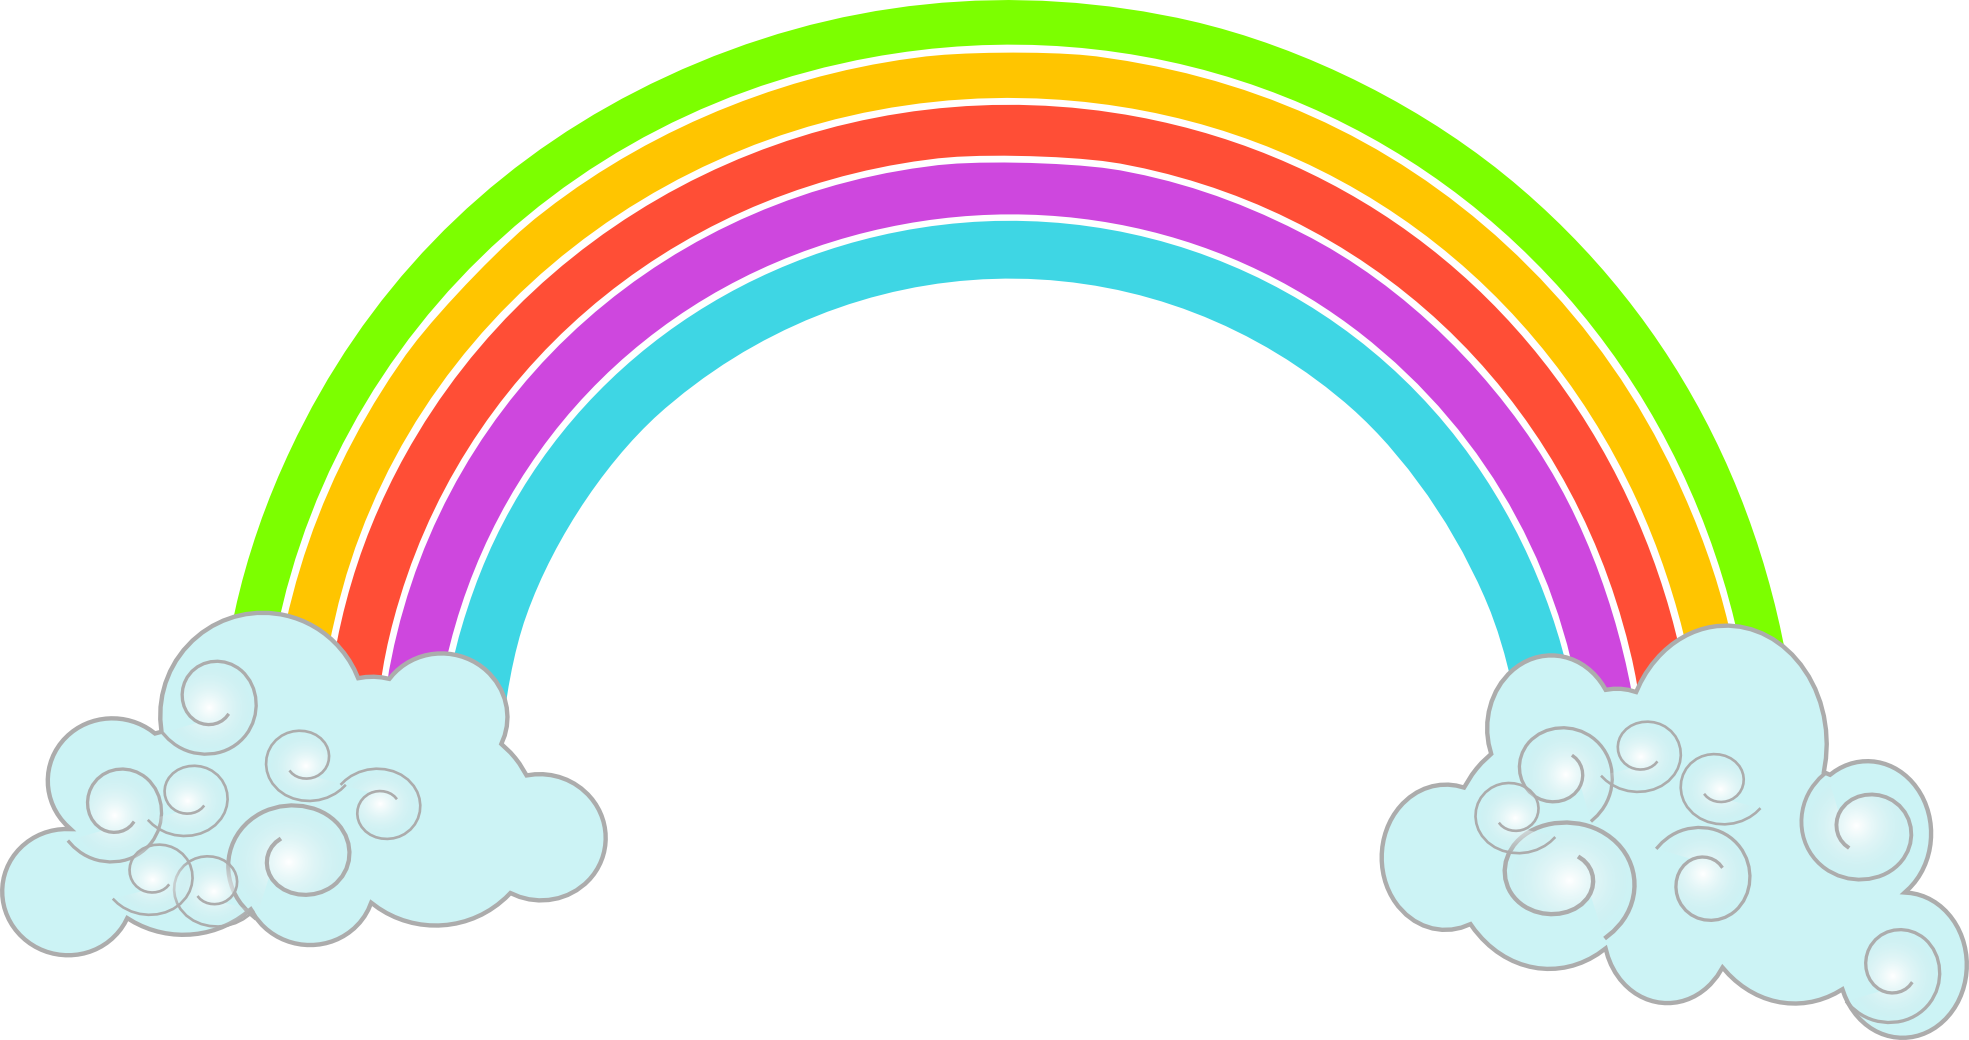 royalty free Rainbow Clipart Png Image Transparent Free Download